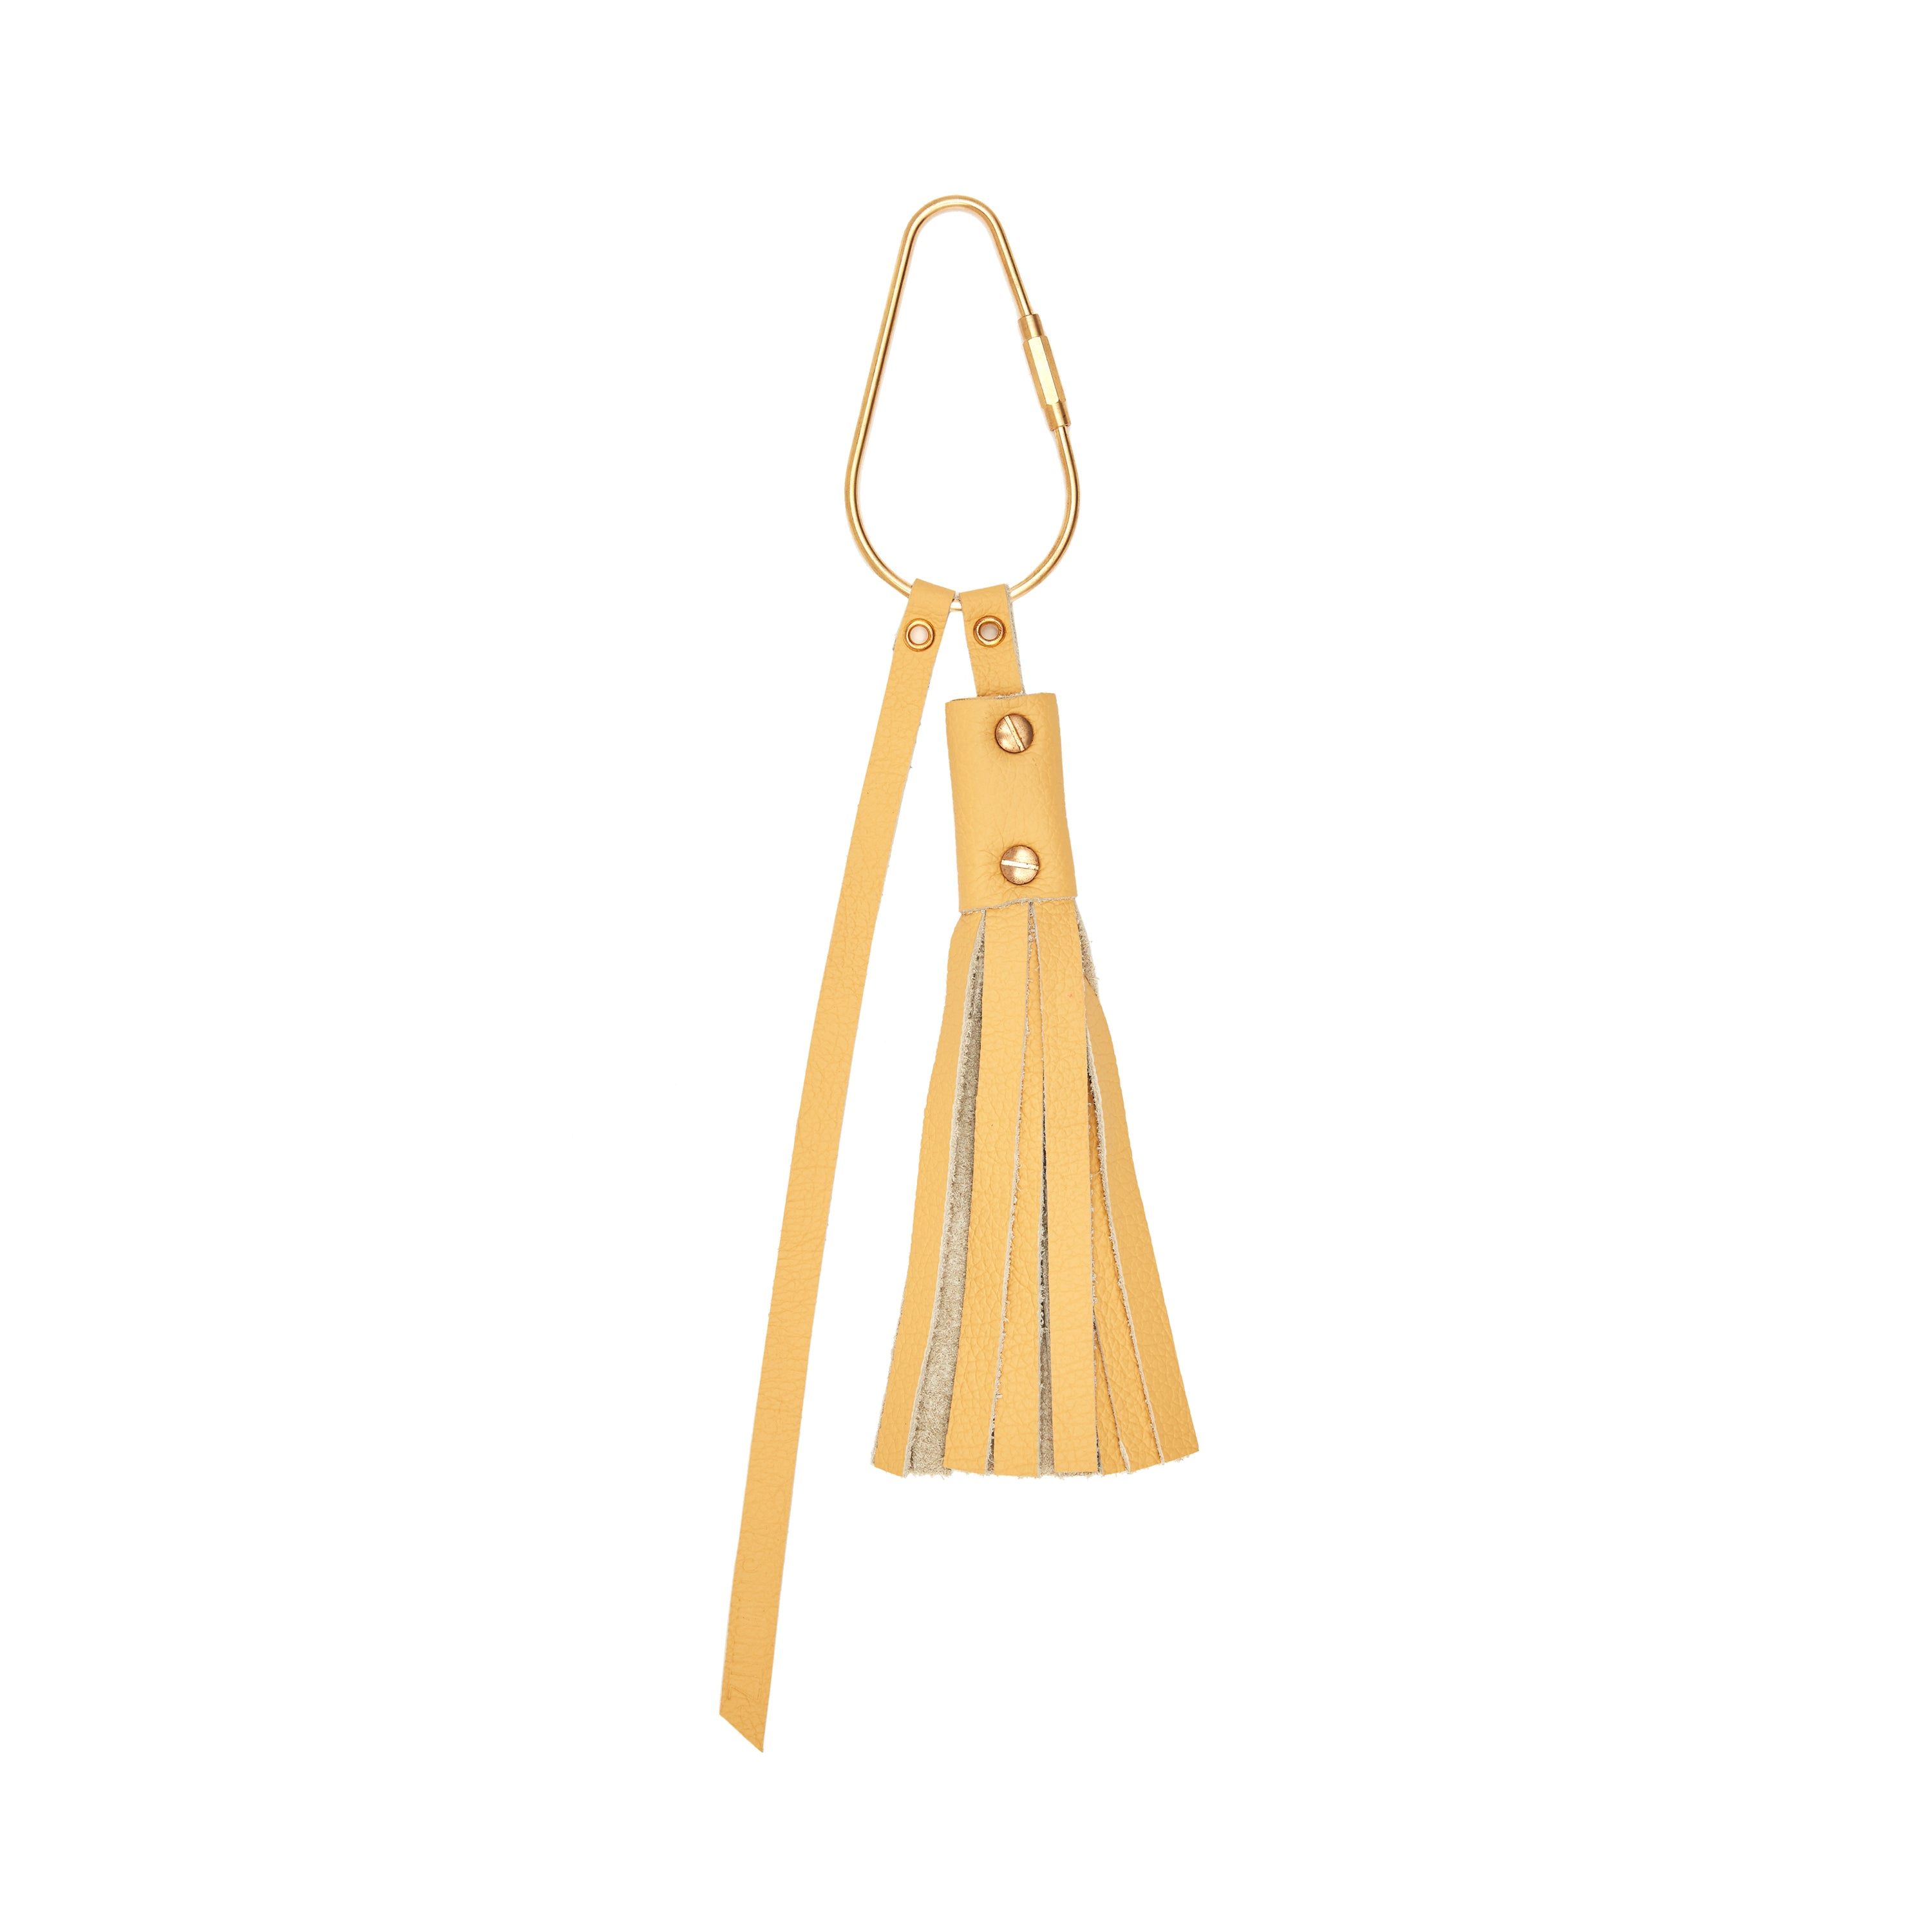 The Poppy Key Ring in Butter Yellow